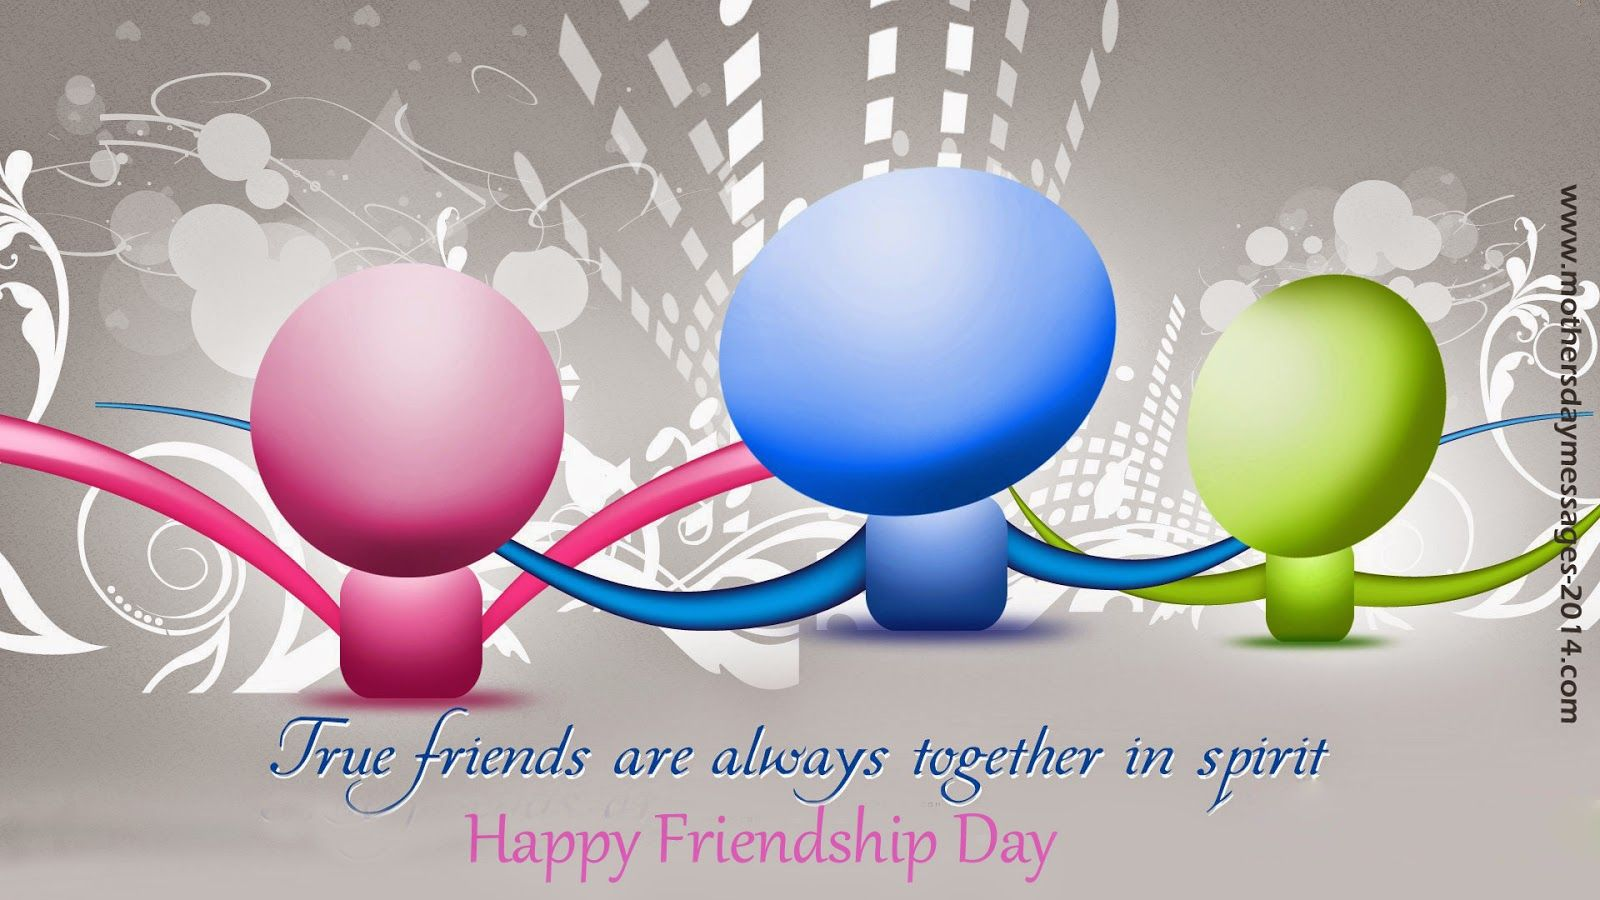 Friendship Day Cards Greetings Images for Facebook Orkut 1600x900